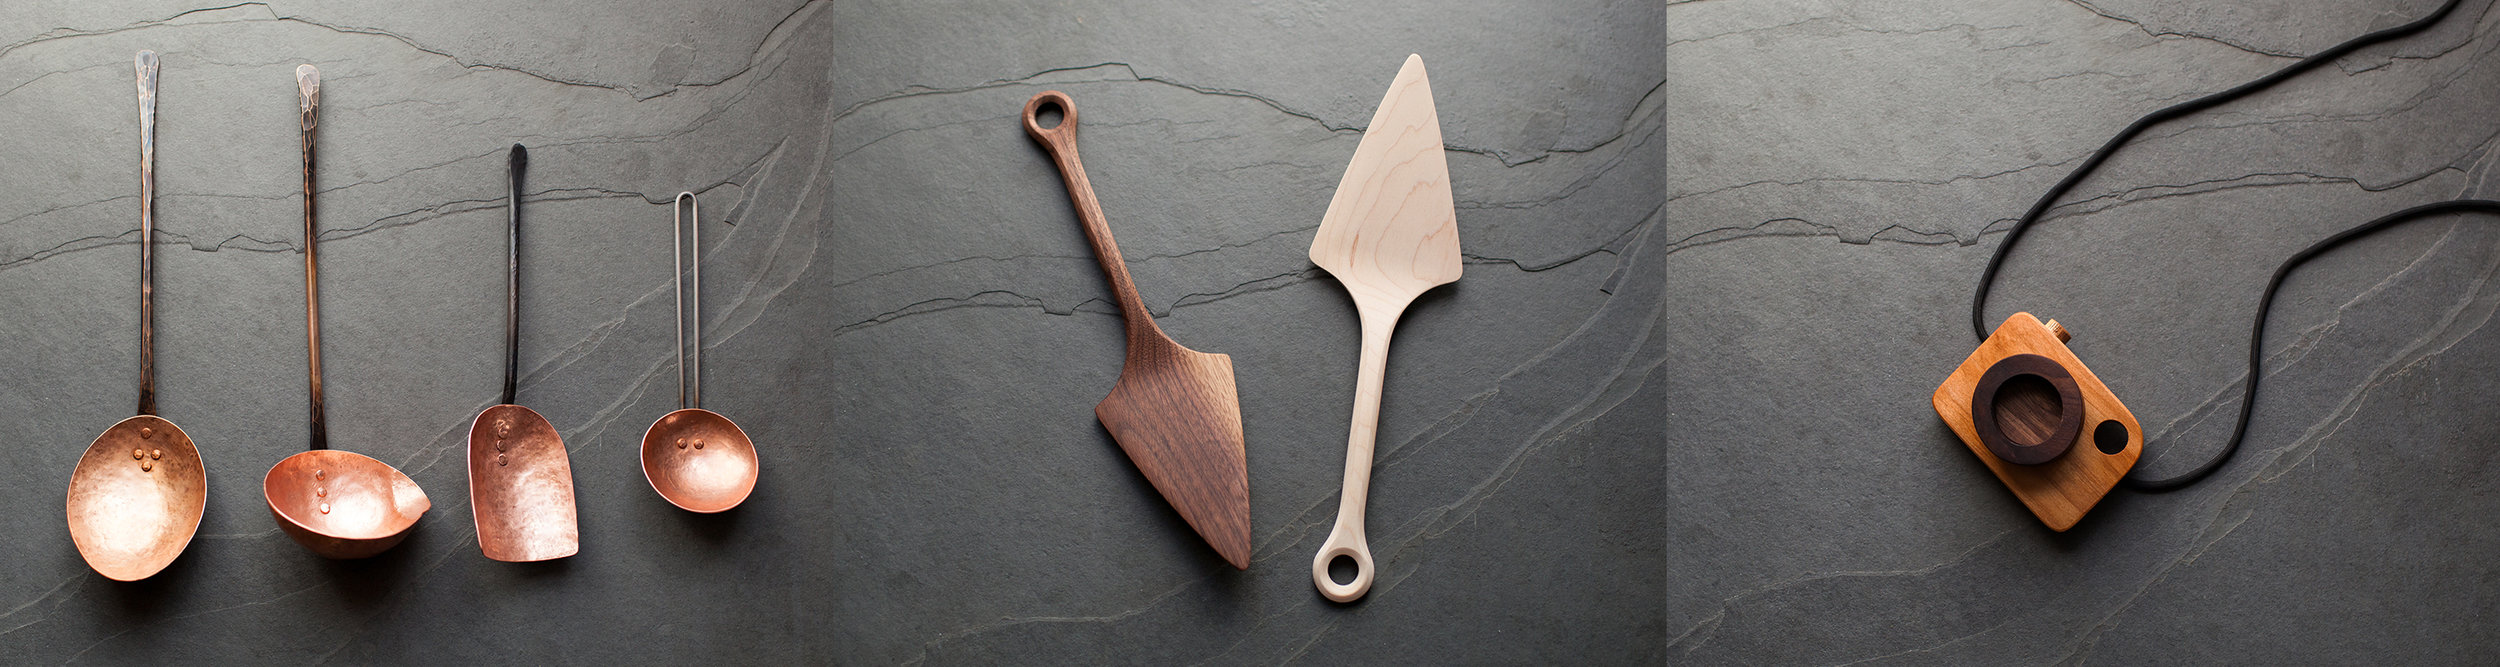 american-made-kitchenware-fine-dining-handmade-goods